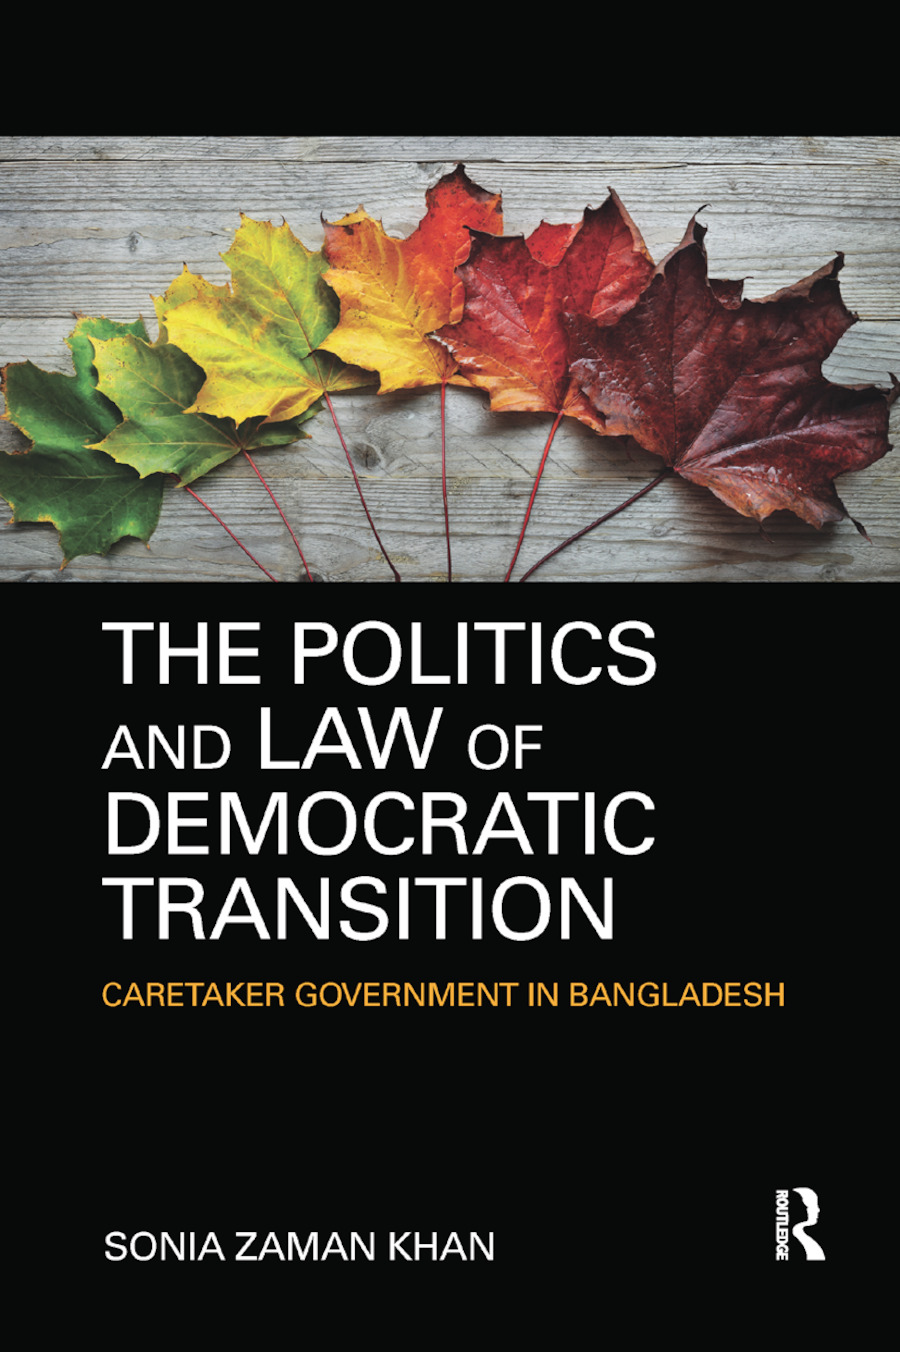 The Politics and Law of Democratic Transition: Caretaker Government in Bangladesh book cover